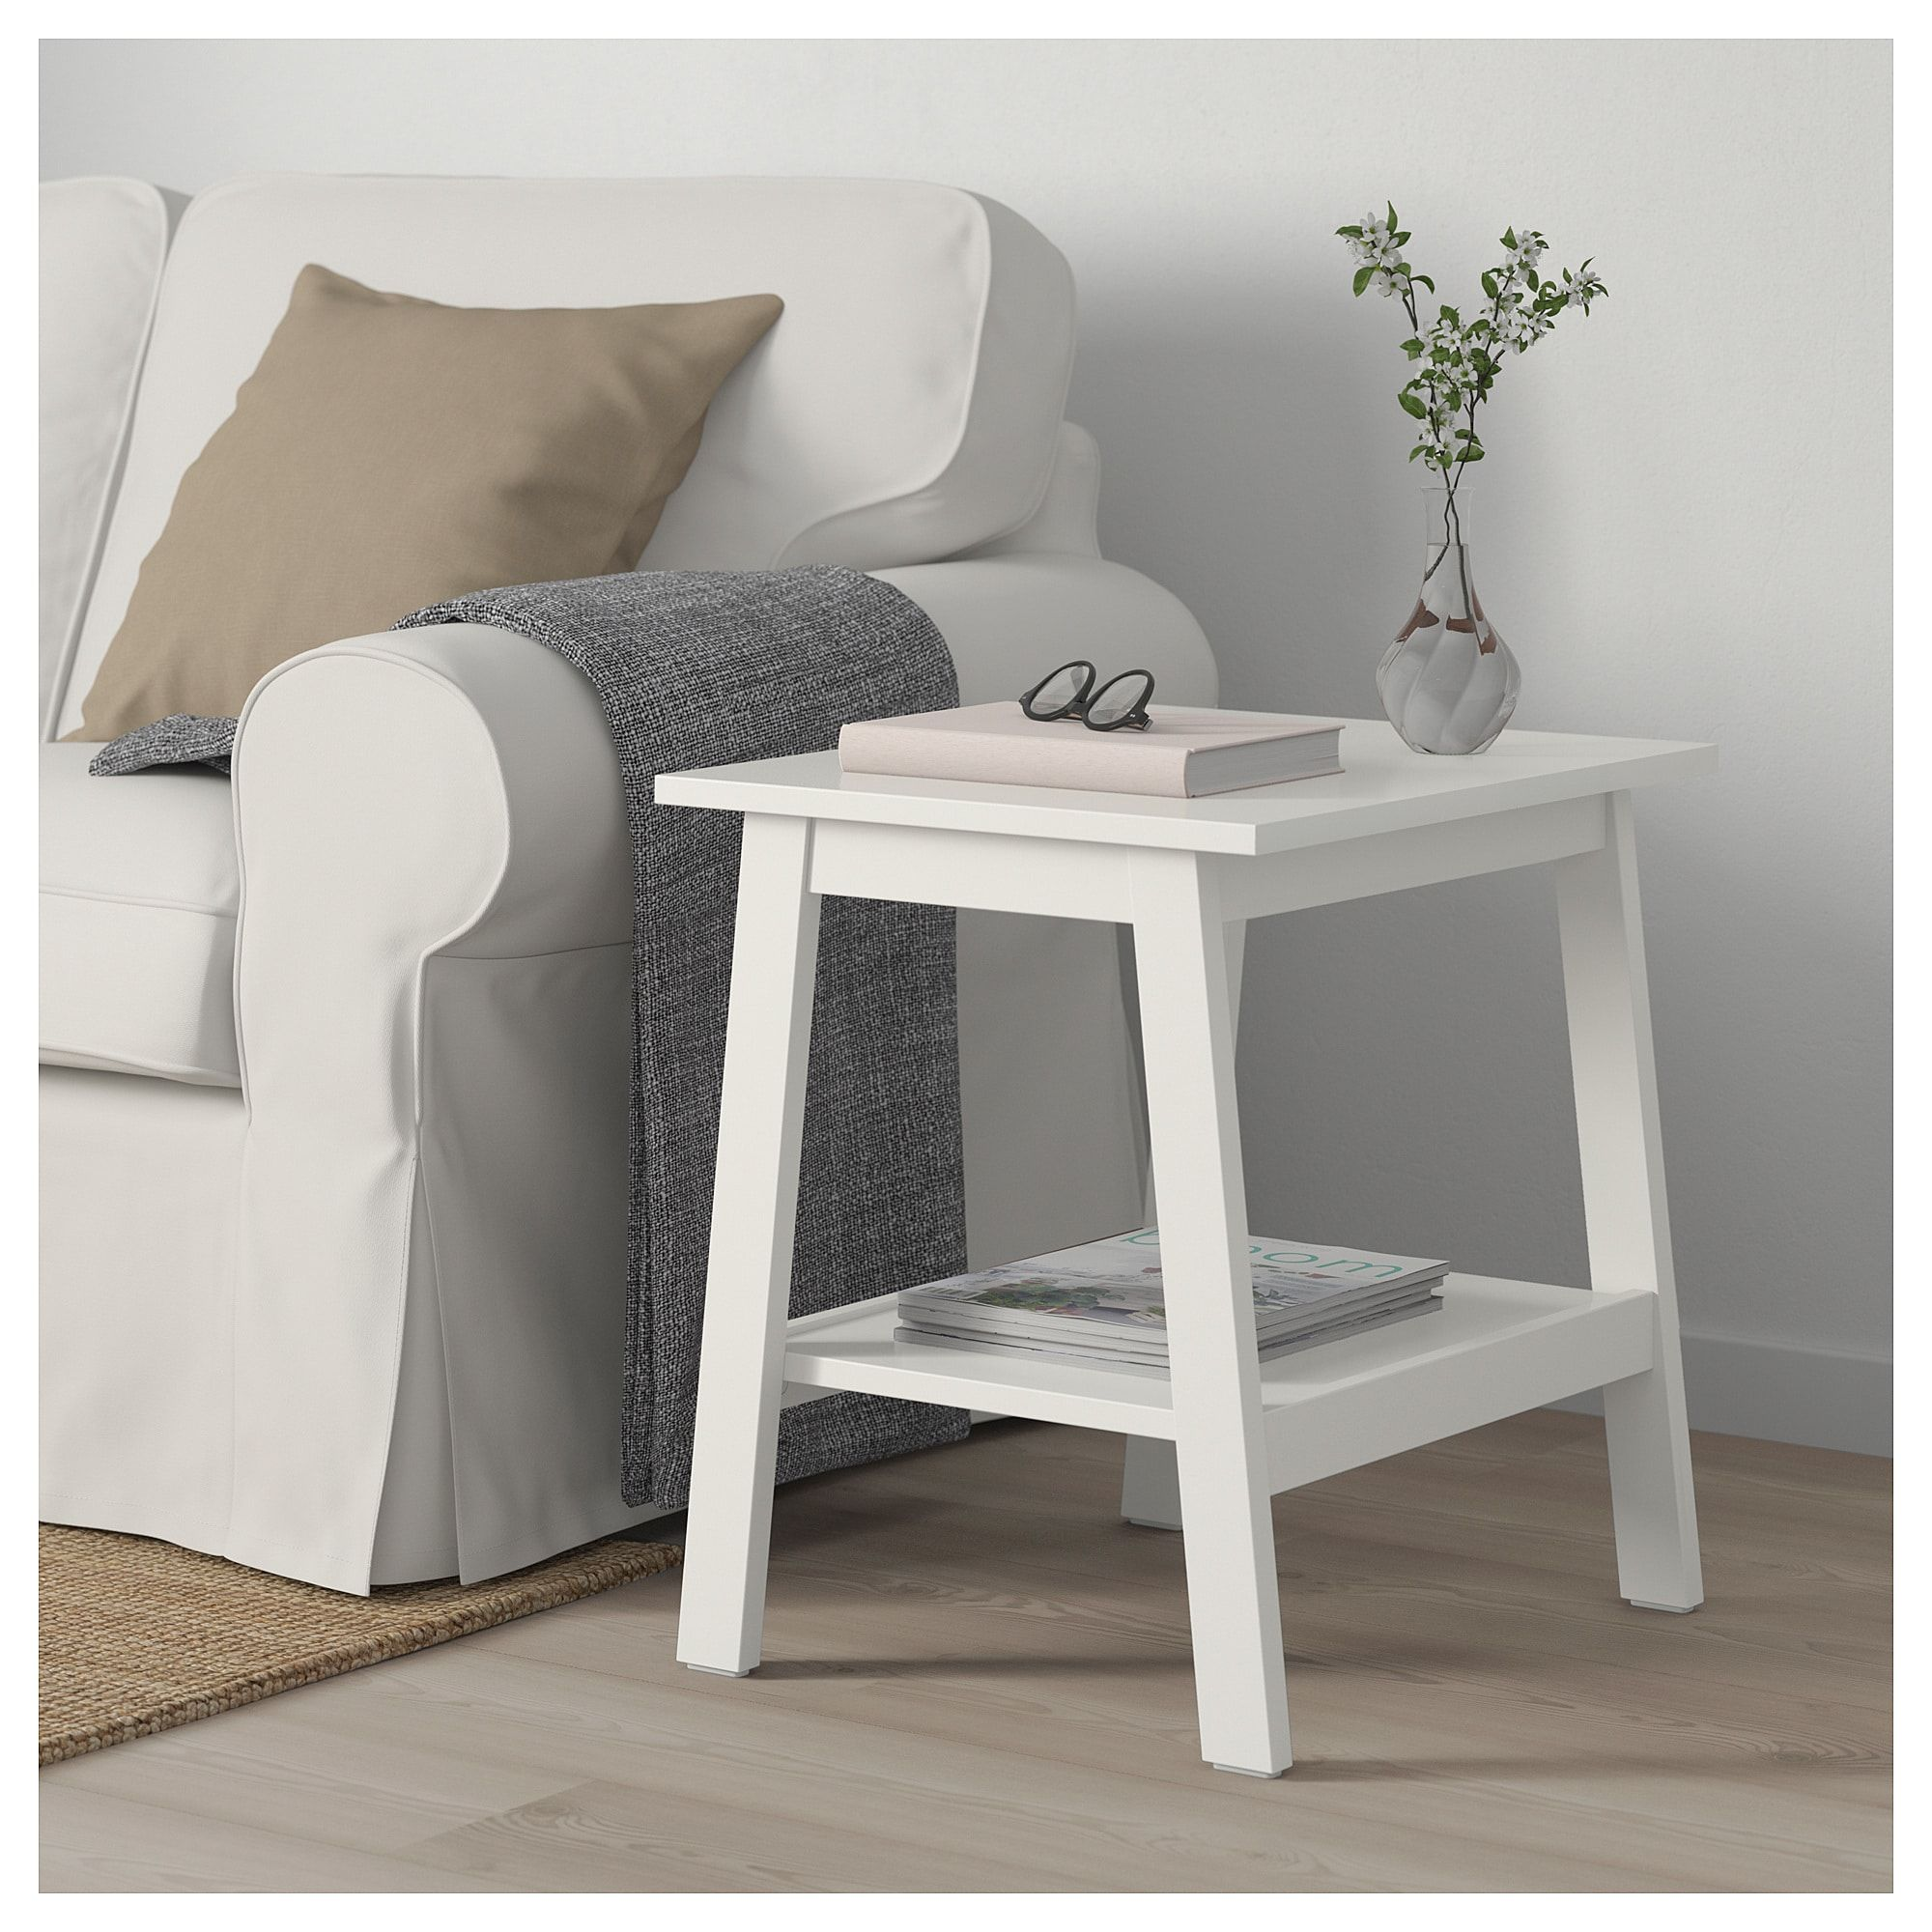 IKEA LUNNARP White Side table in 2019 | Texas home | White side ...